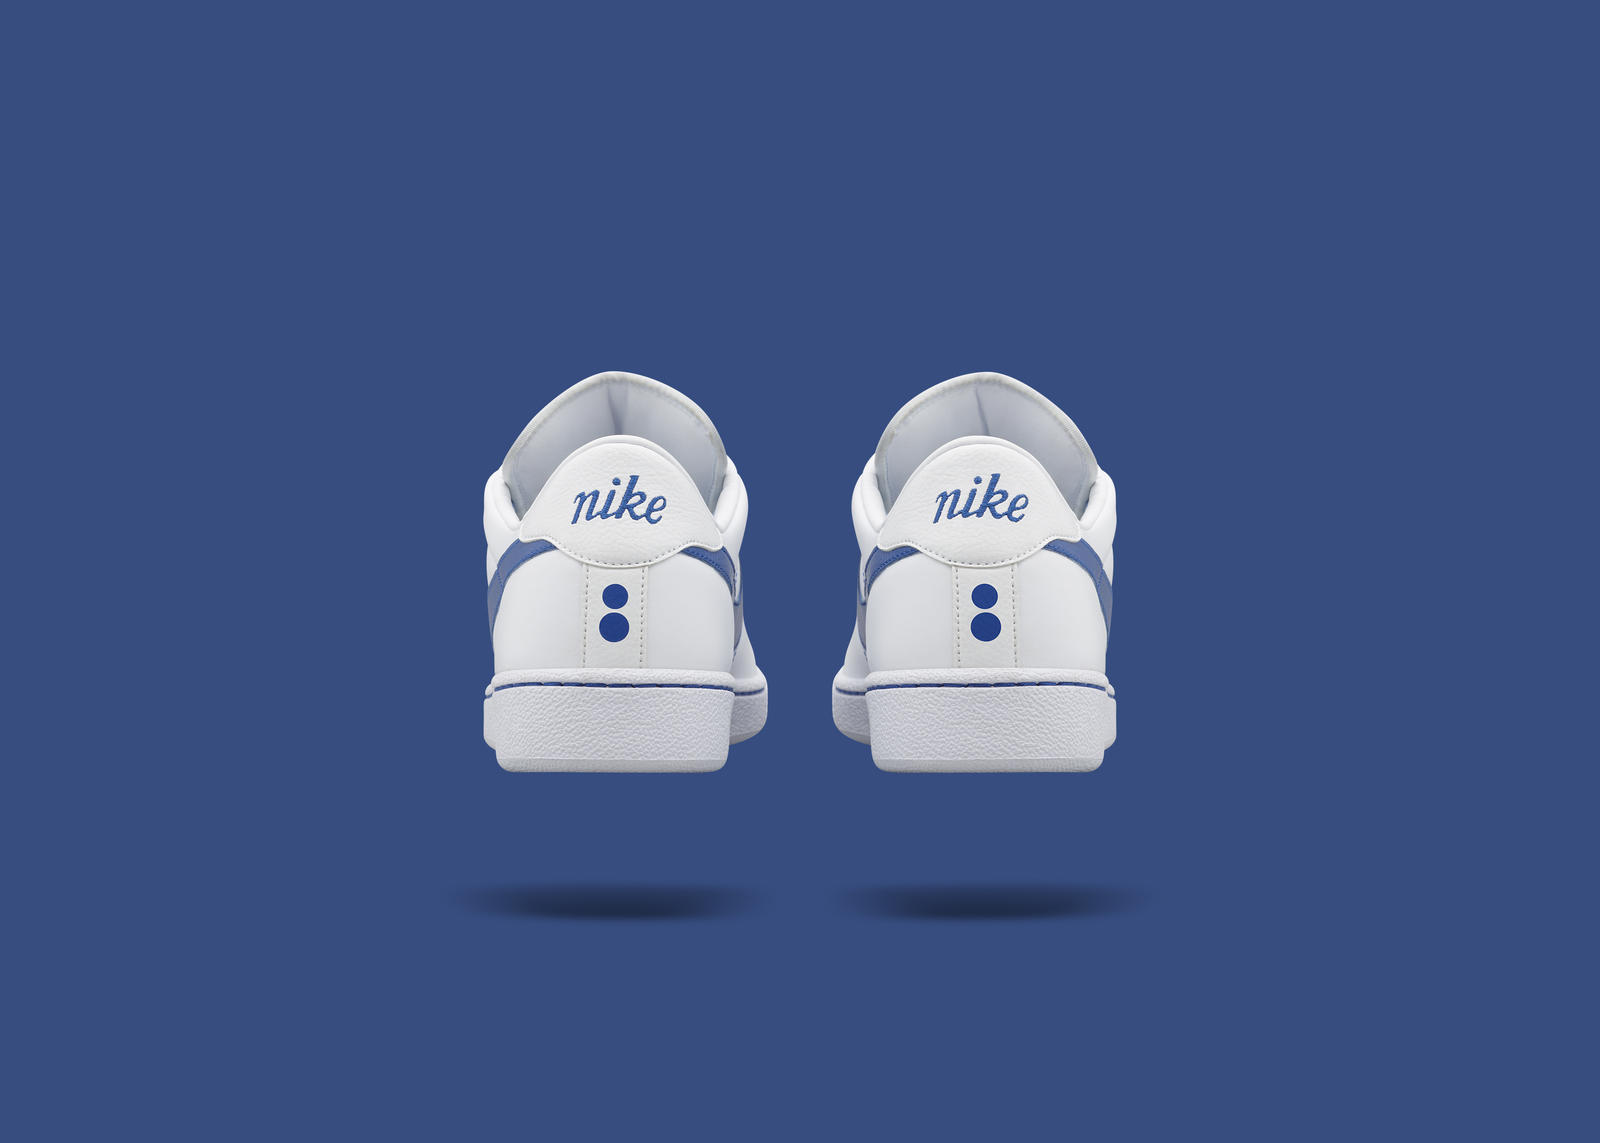 Nikecourt tennis classic x colette 4 rectangle 1600